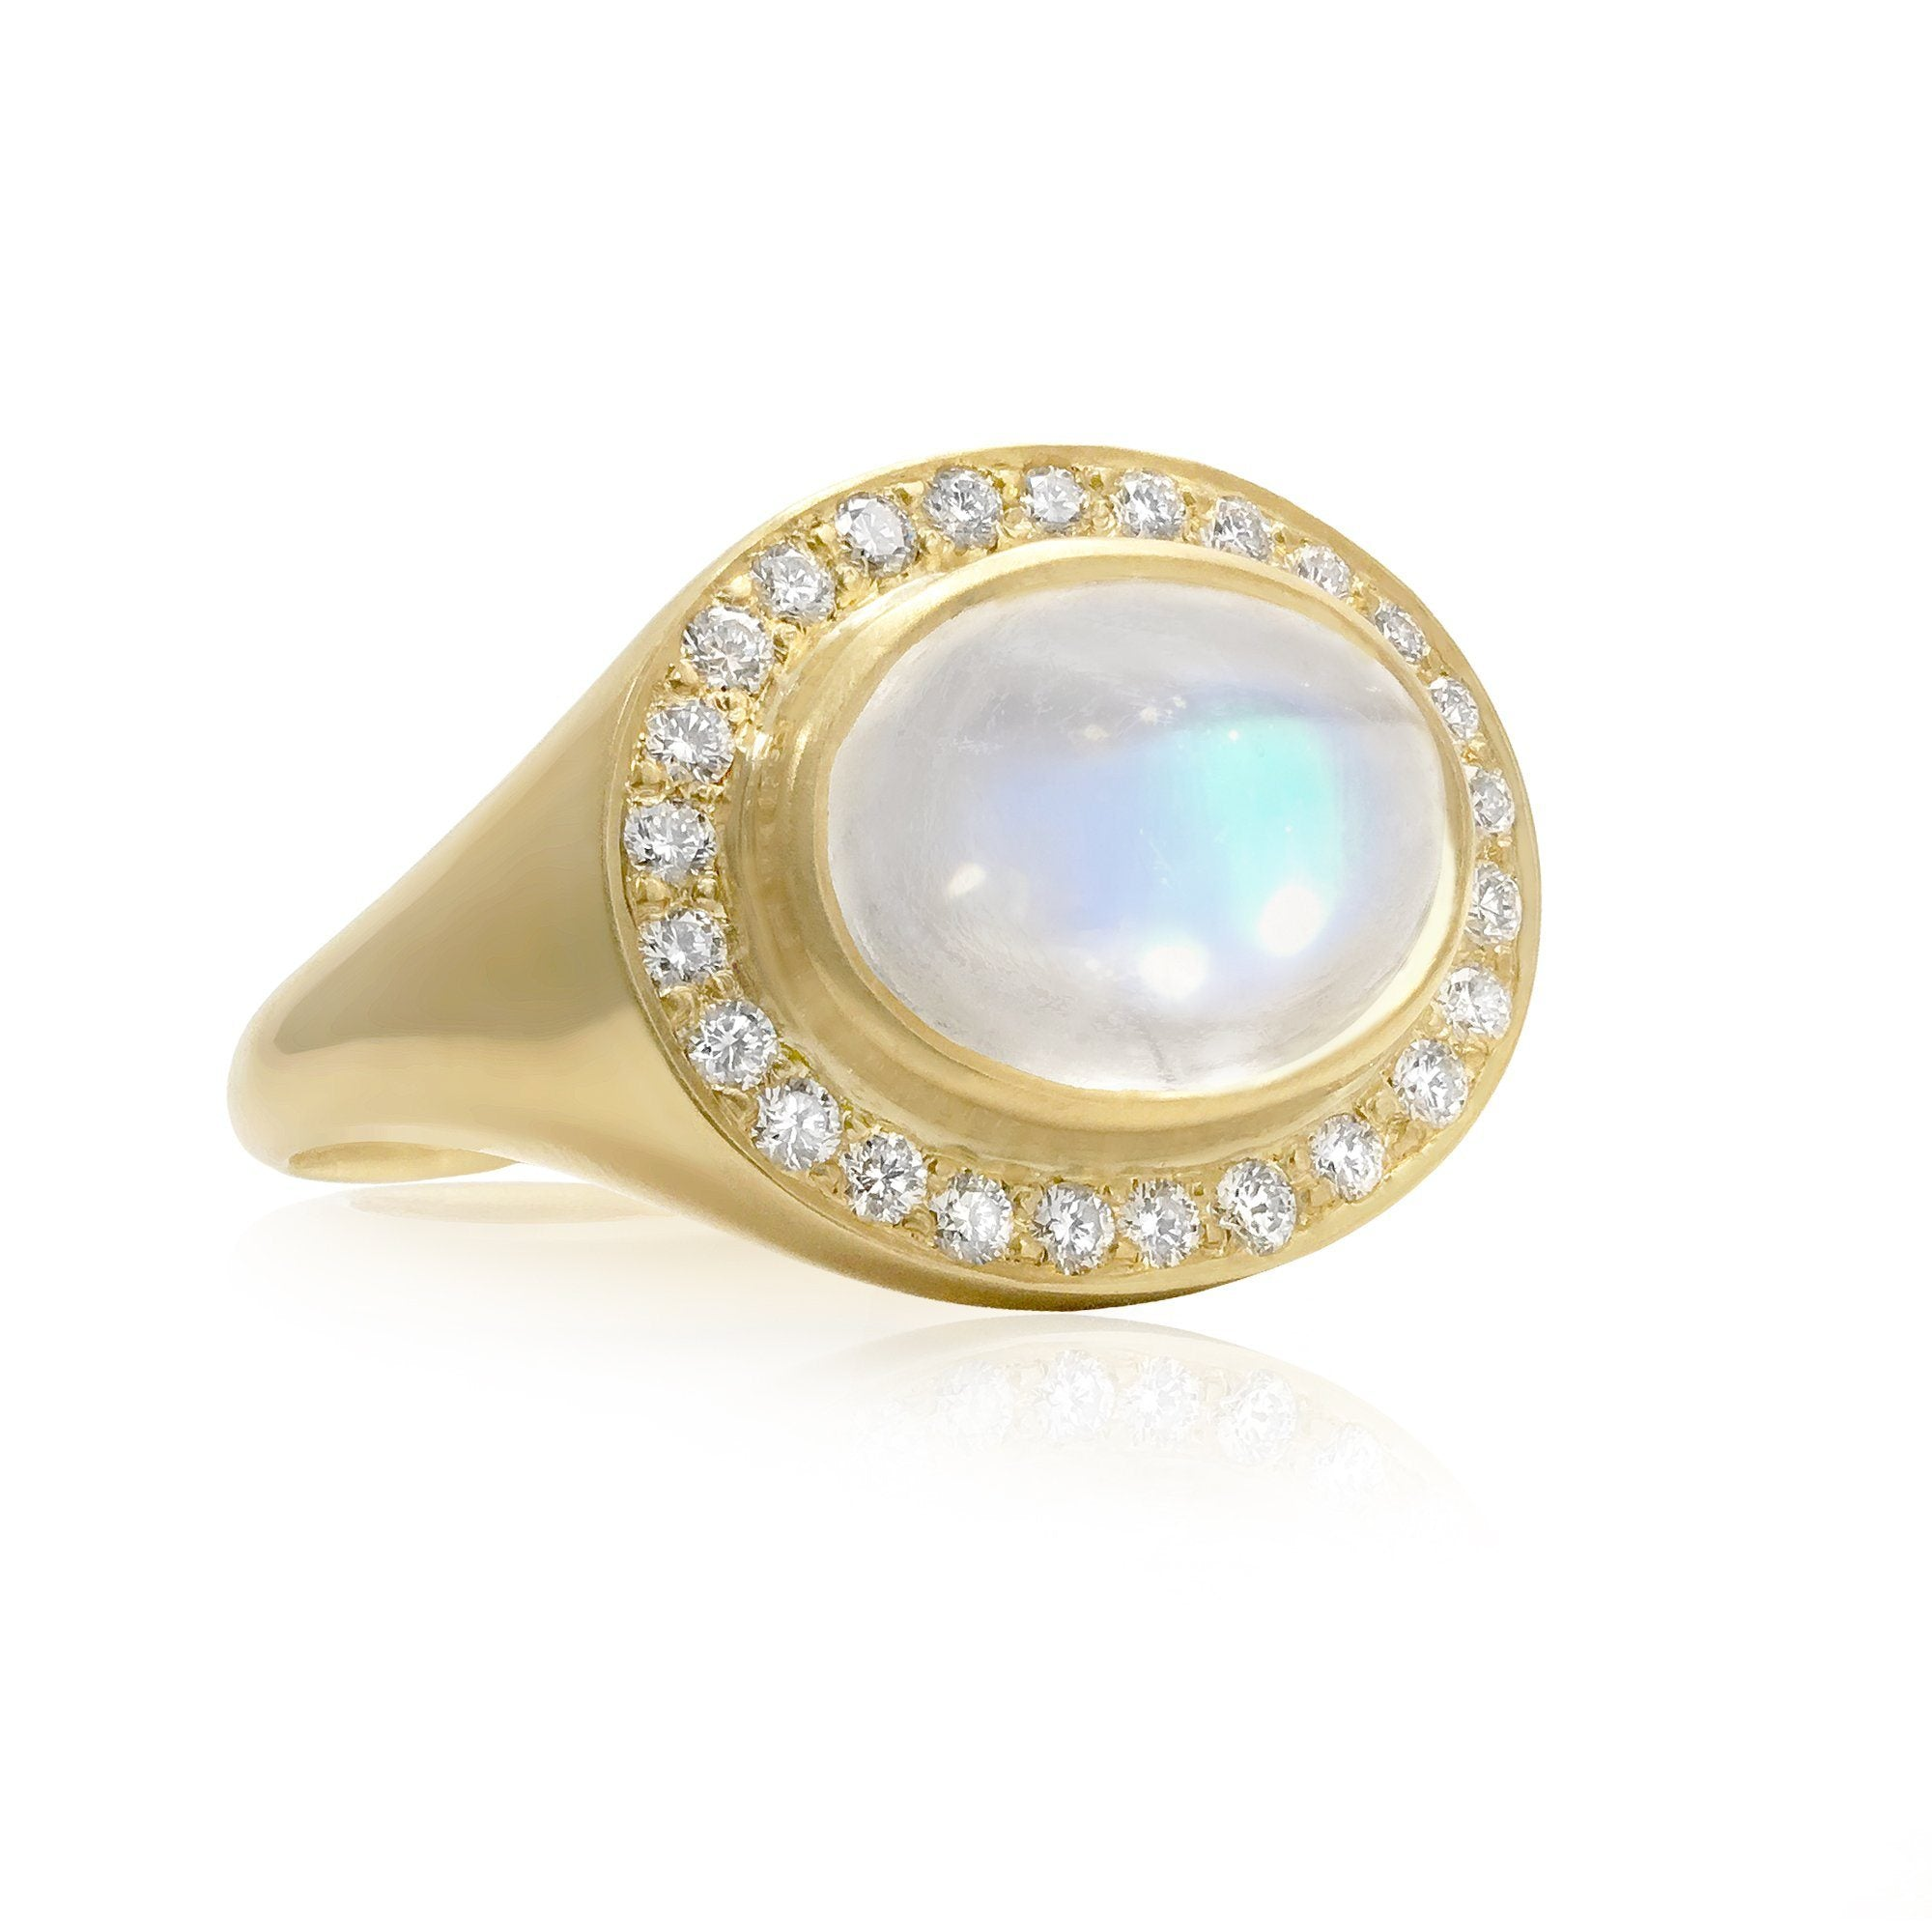 pearl id s rings white ring sale bombe j cat jewelry moonstone eye cocktail gold at for org cats